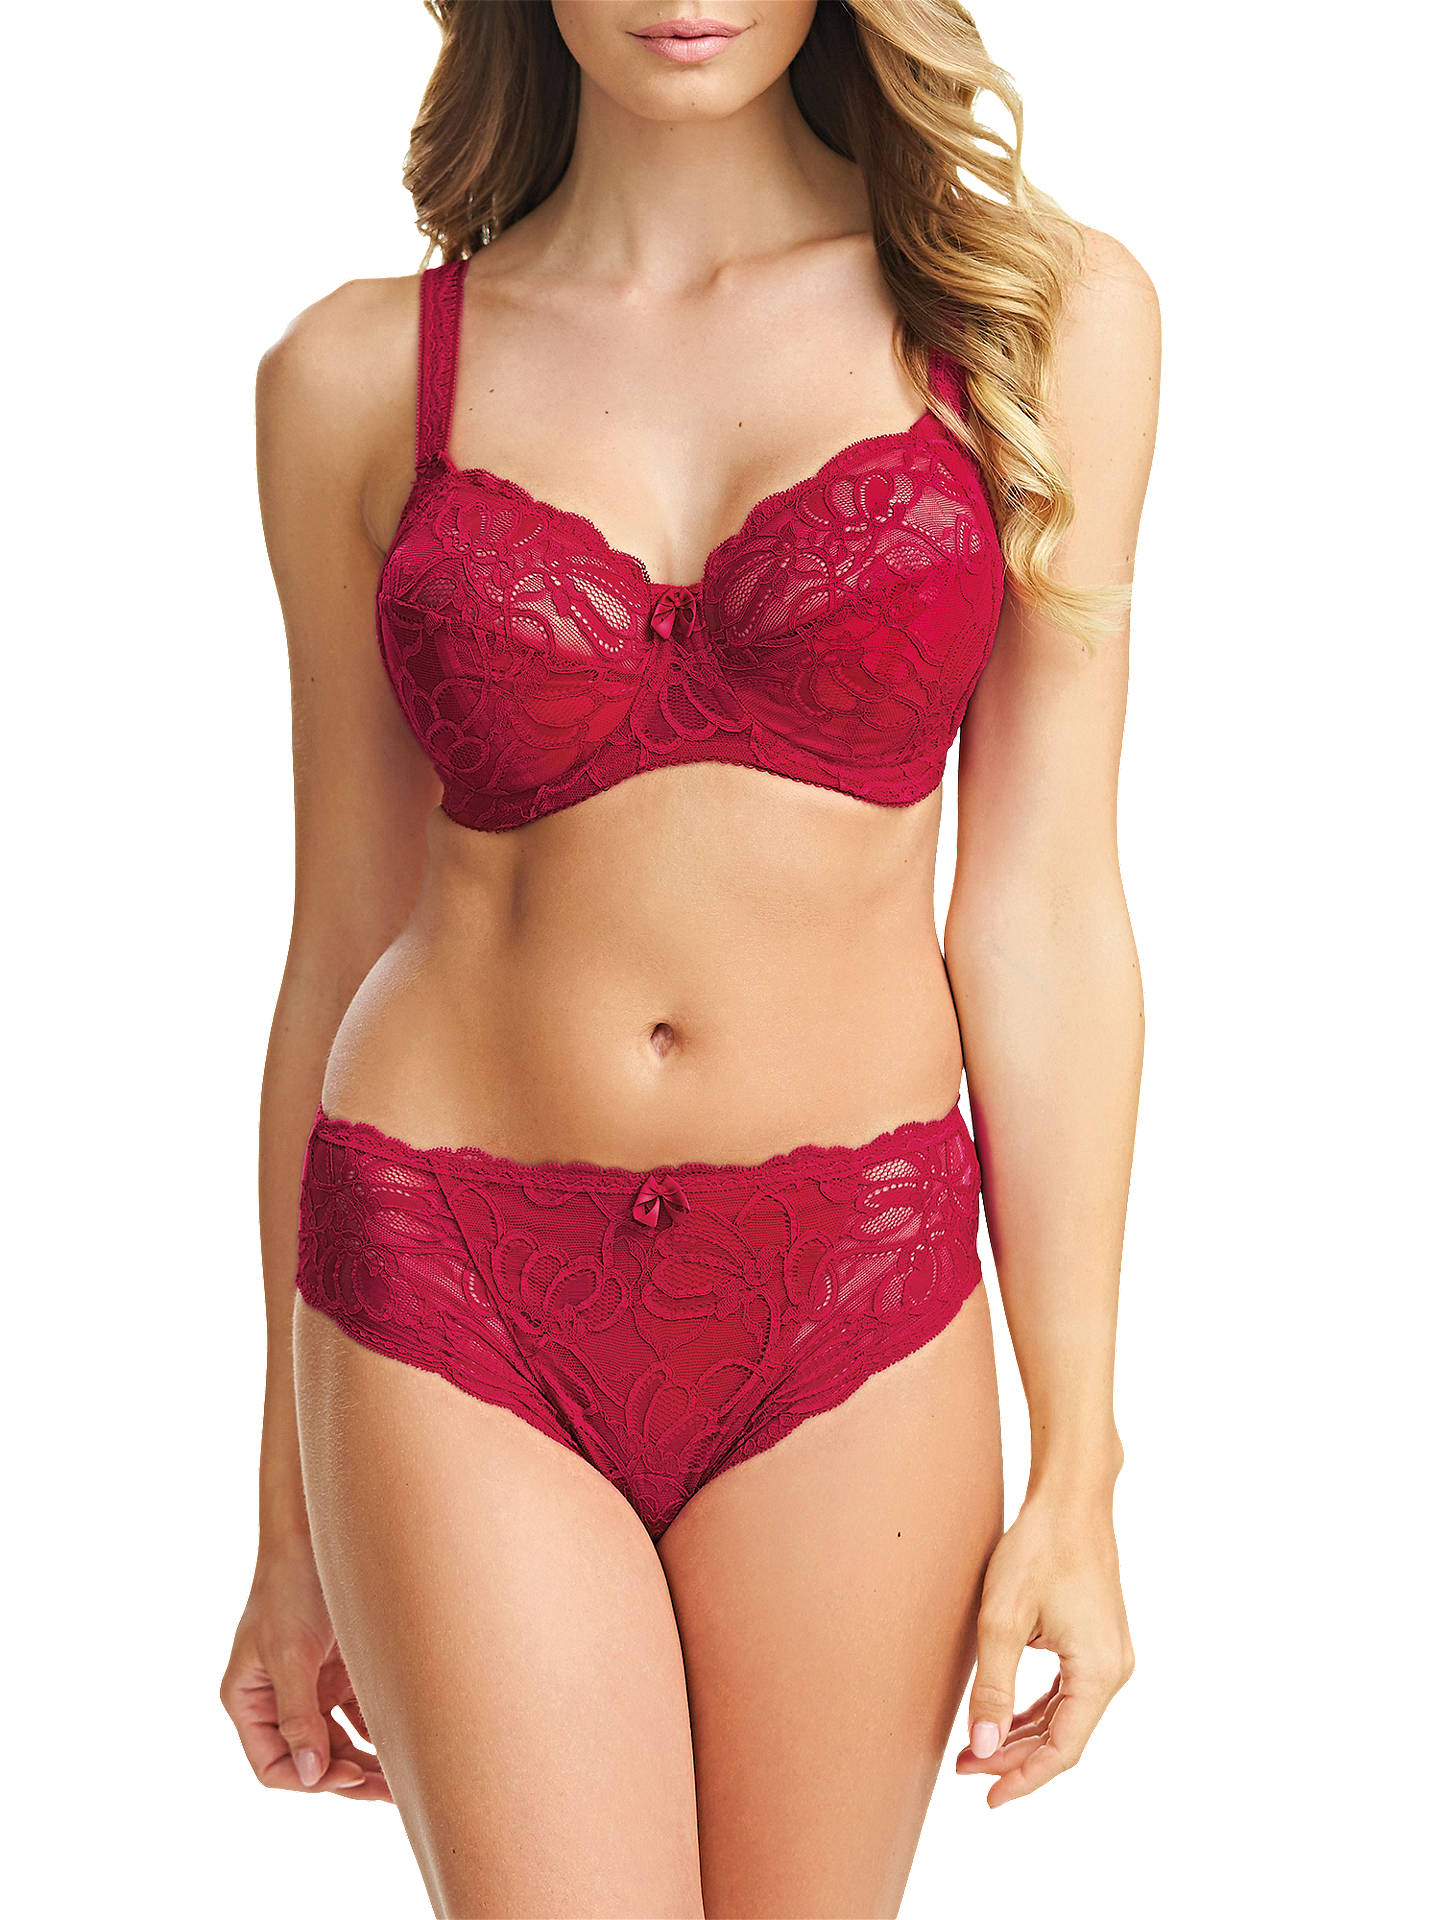 98a65696aeca ... Buy Fantasie Jacqueline Lace Full Cup Bra, Red, 30DD Online at  johnlewis.com ...